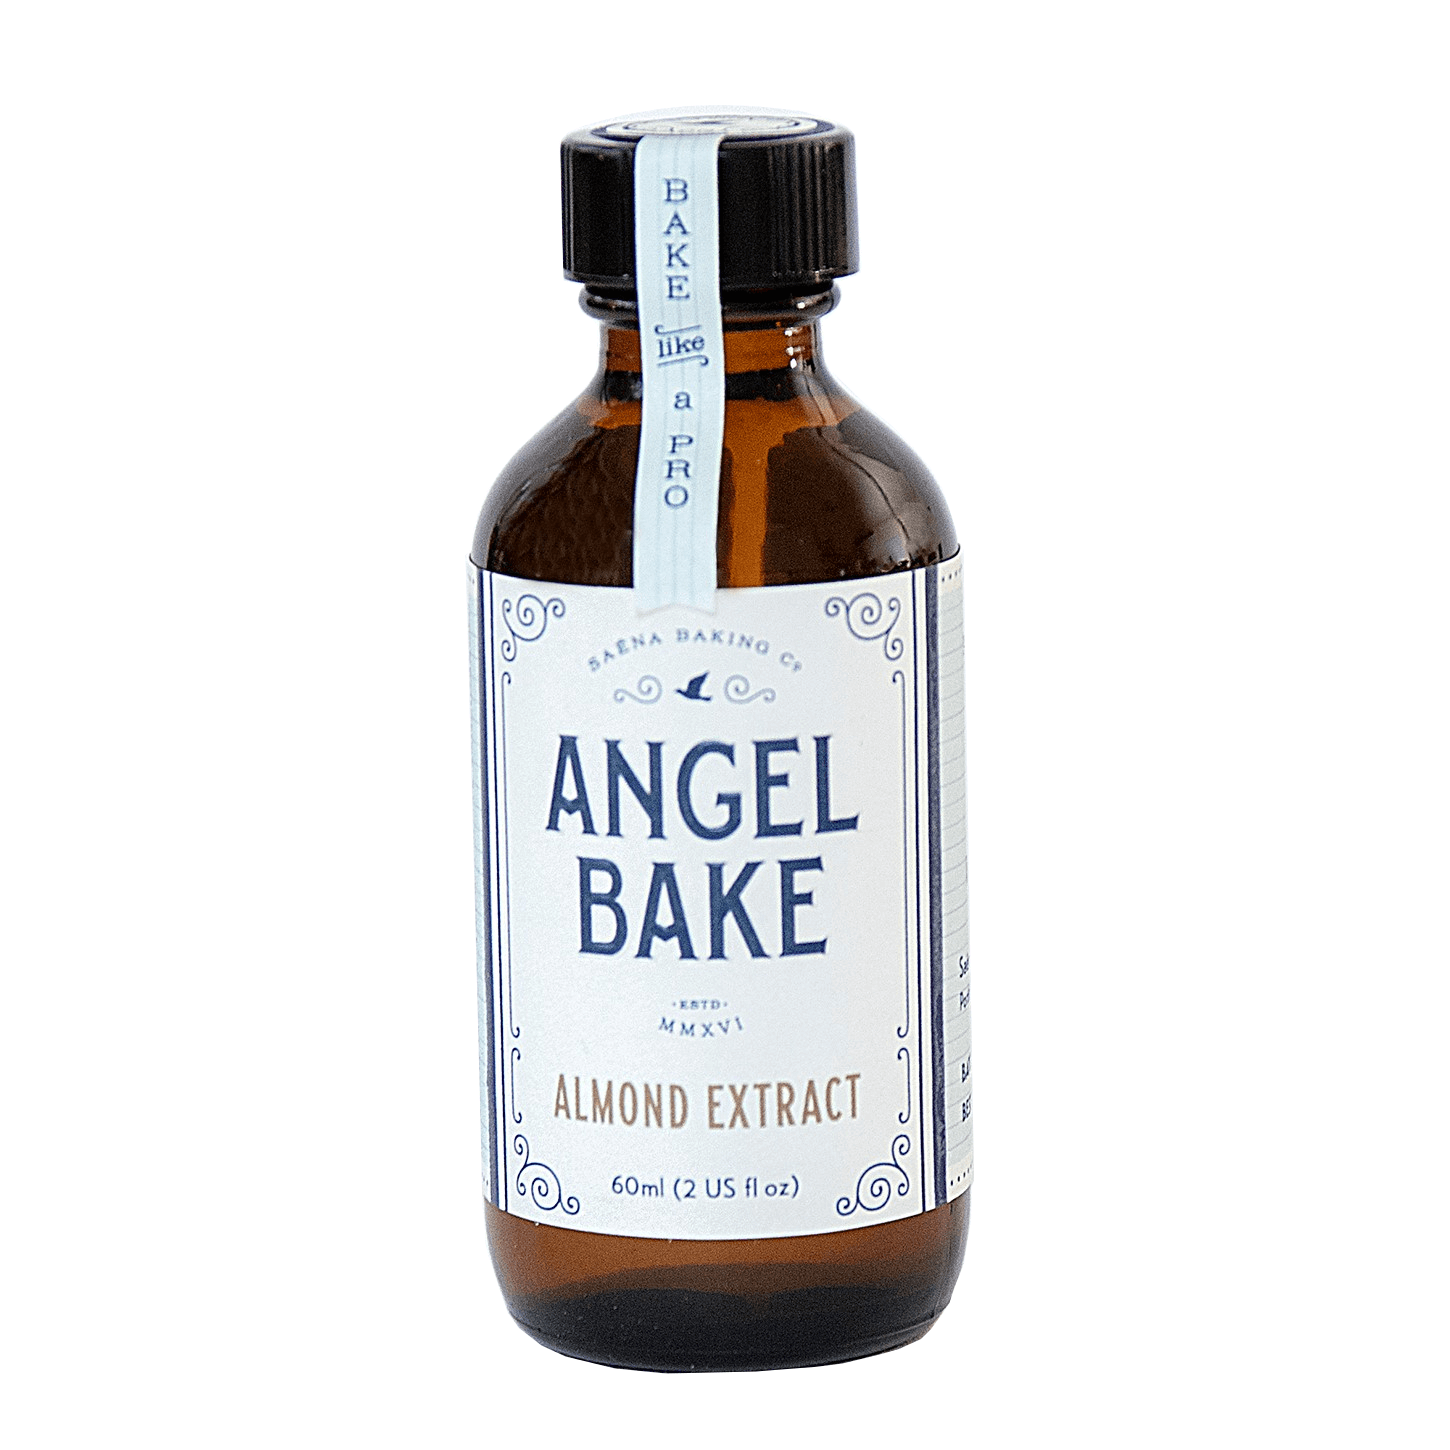 Almond Extract by Saena Baking Co.